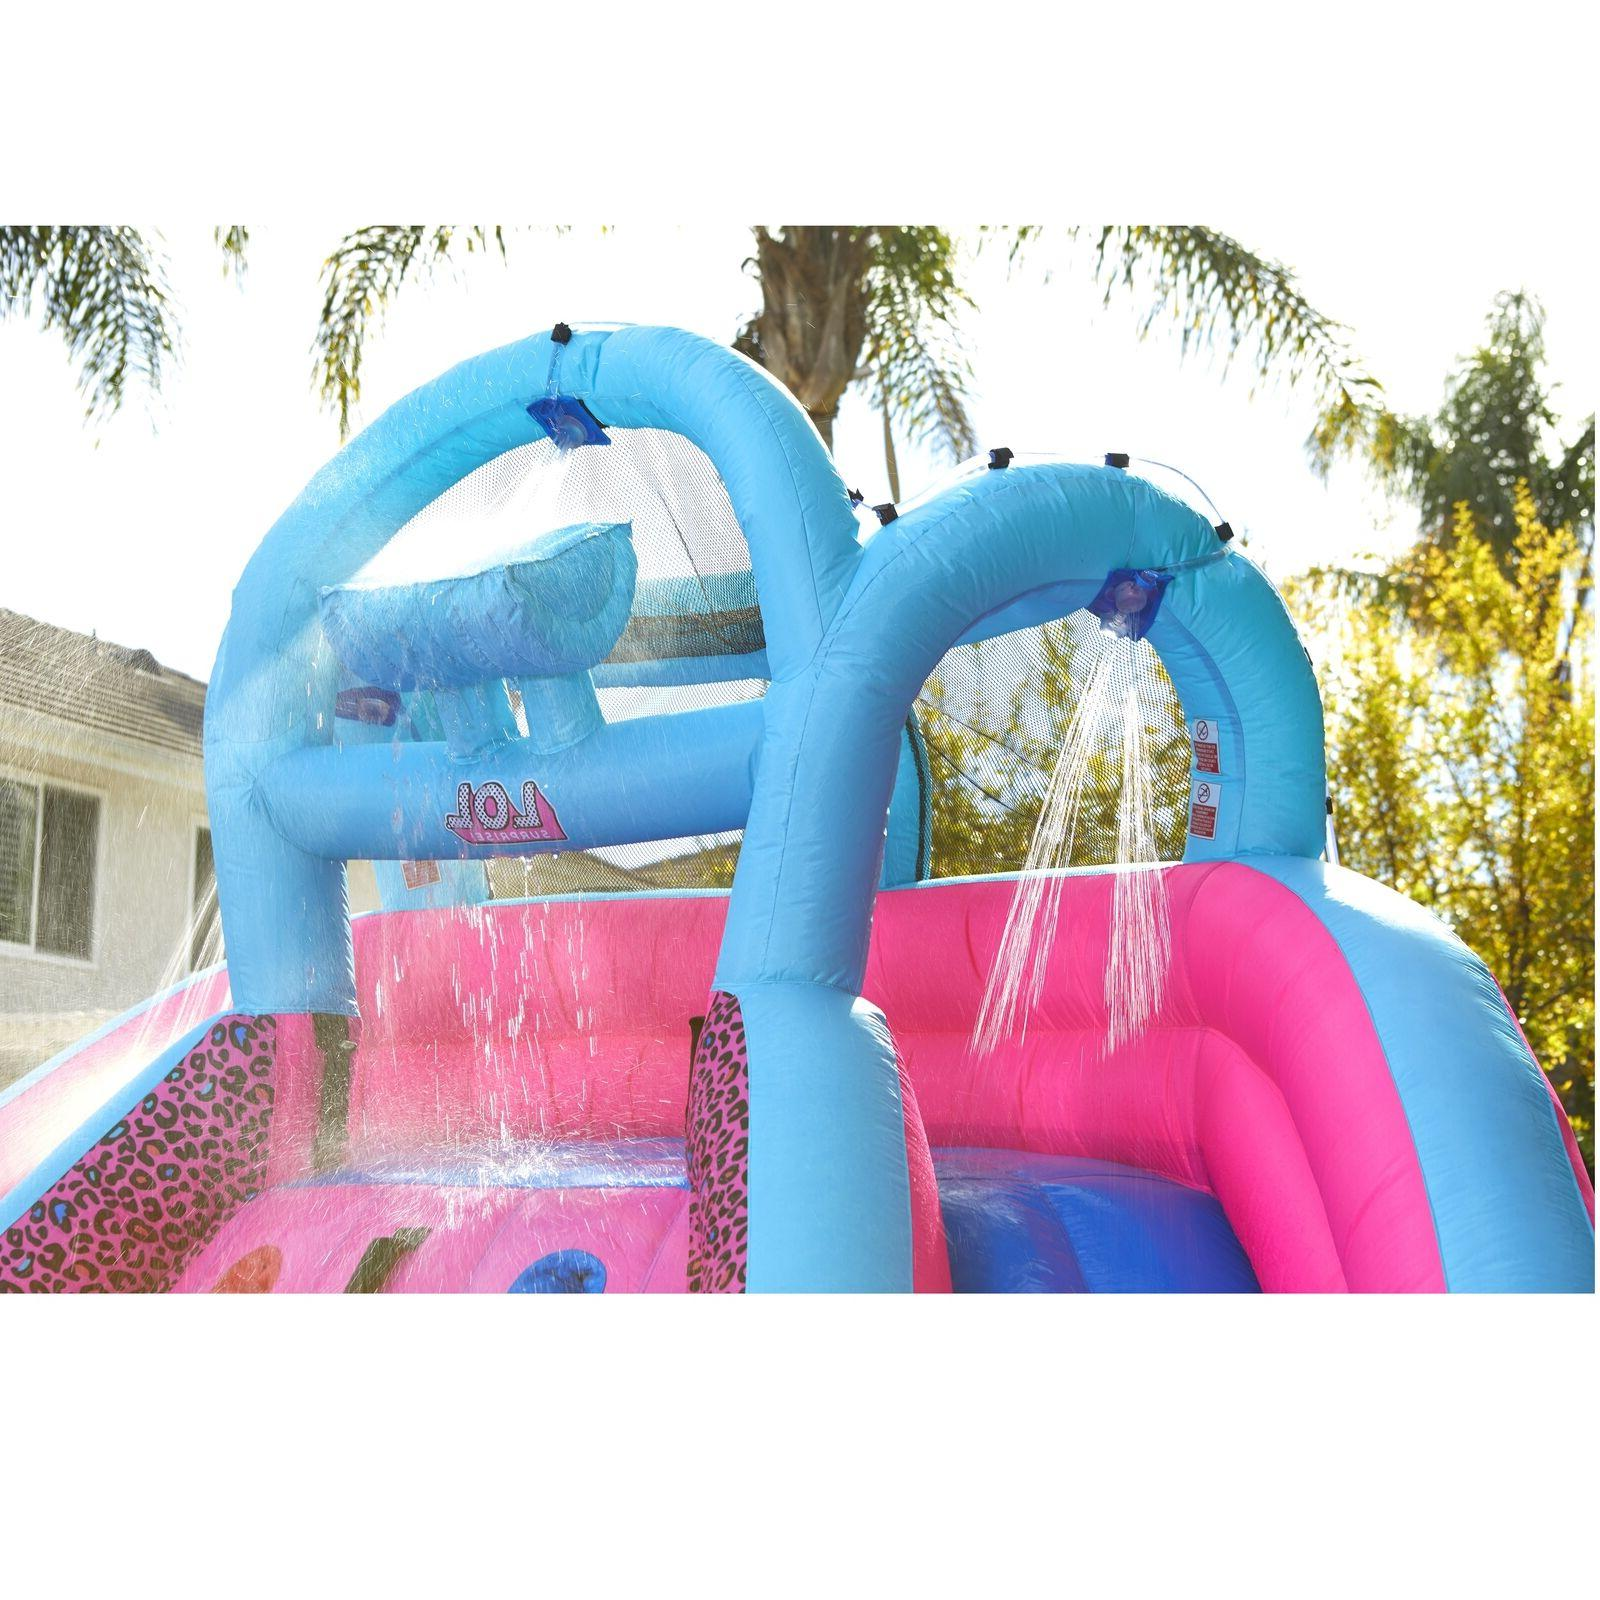 Inflatable / Climbing Wall Combo Slide Blower